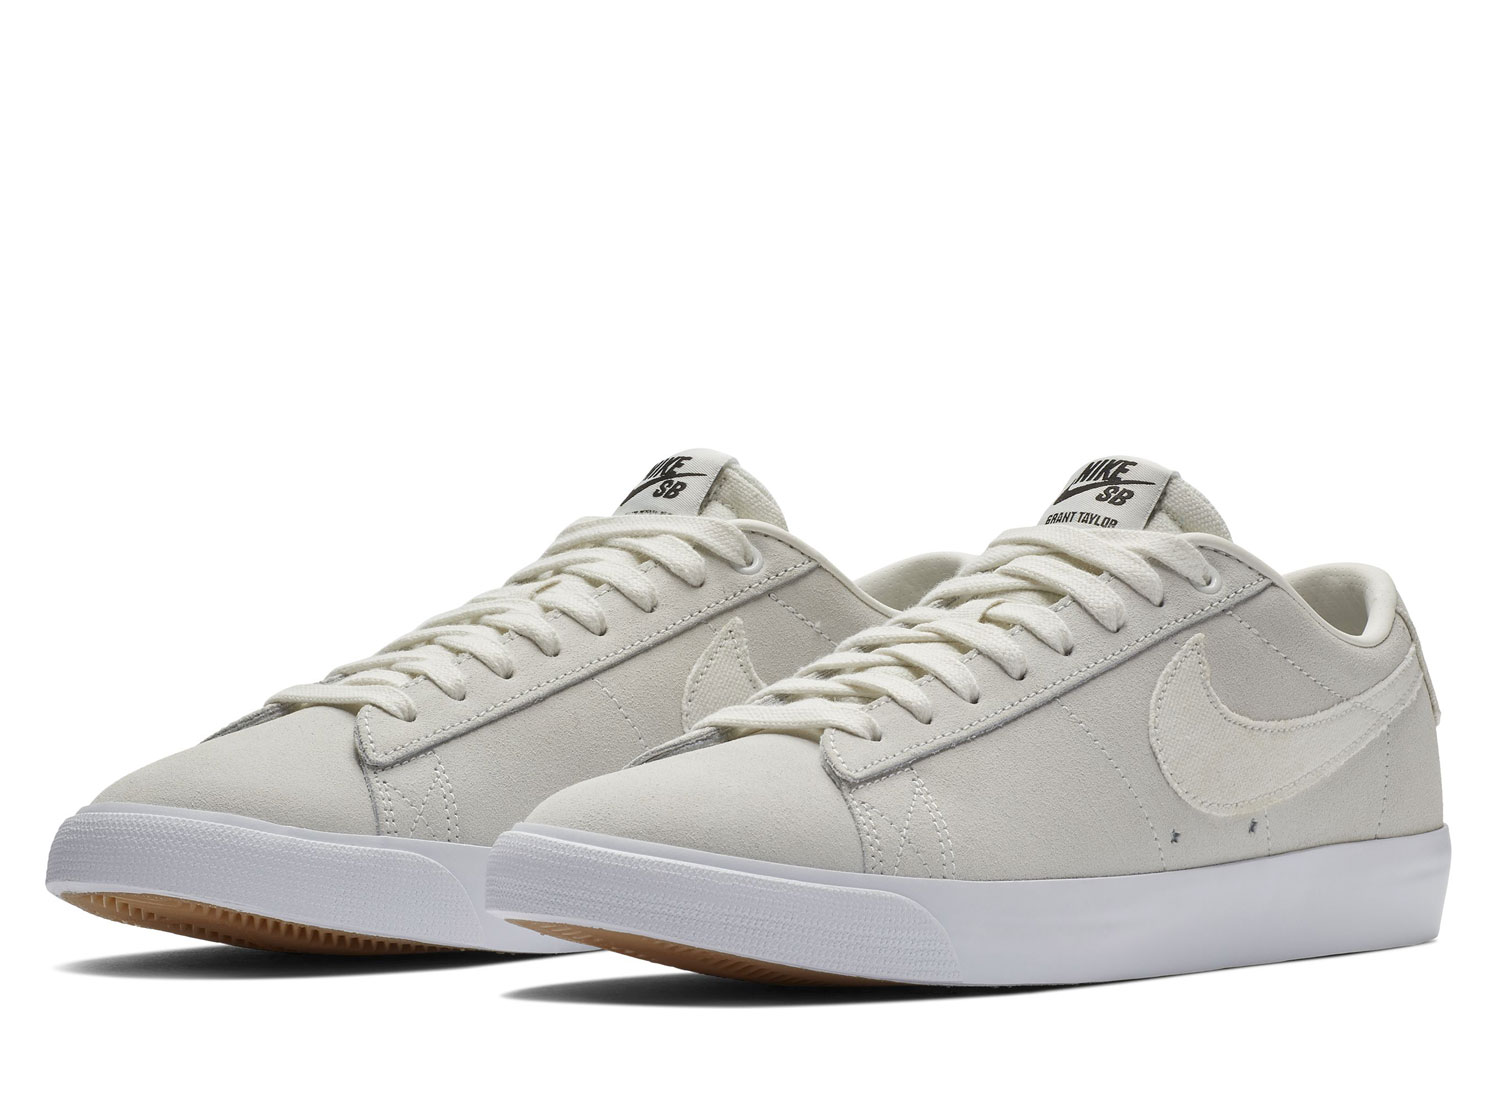 competitive price a3faf 38bbb Nike SB Zoom Blazer Low GT Summit White 704939-100   Soldes   Novoid Plus